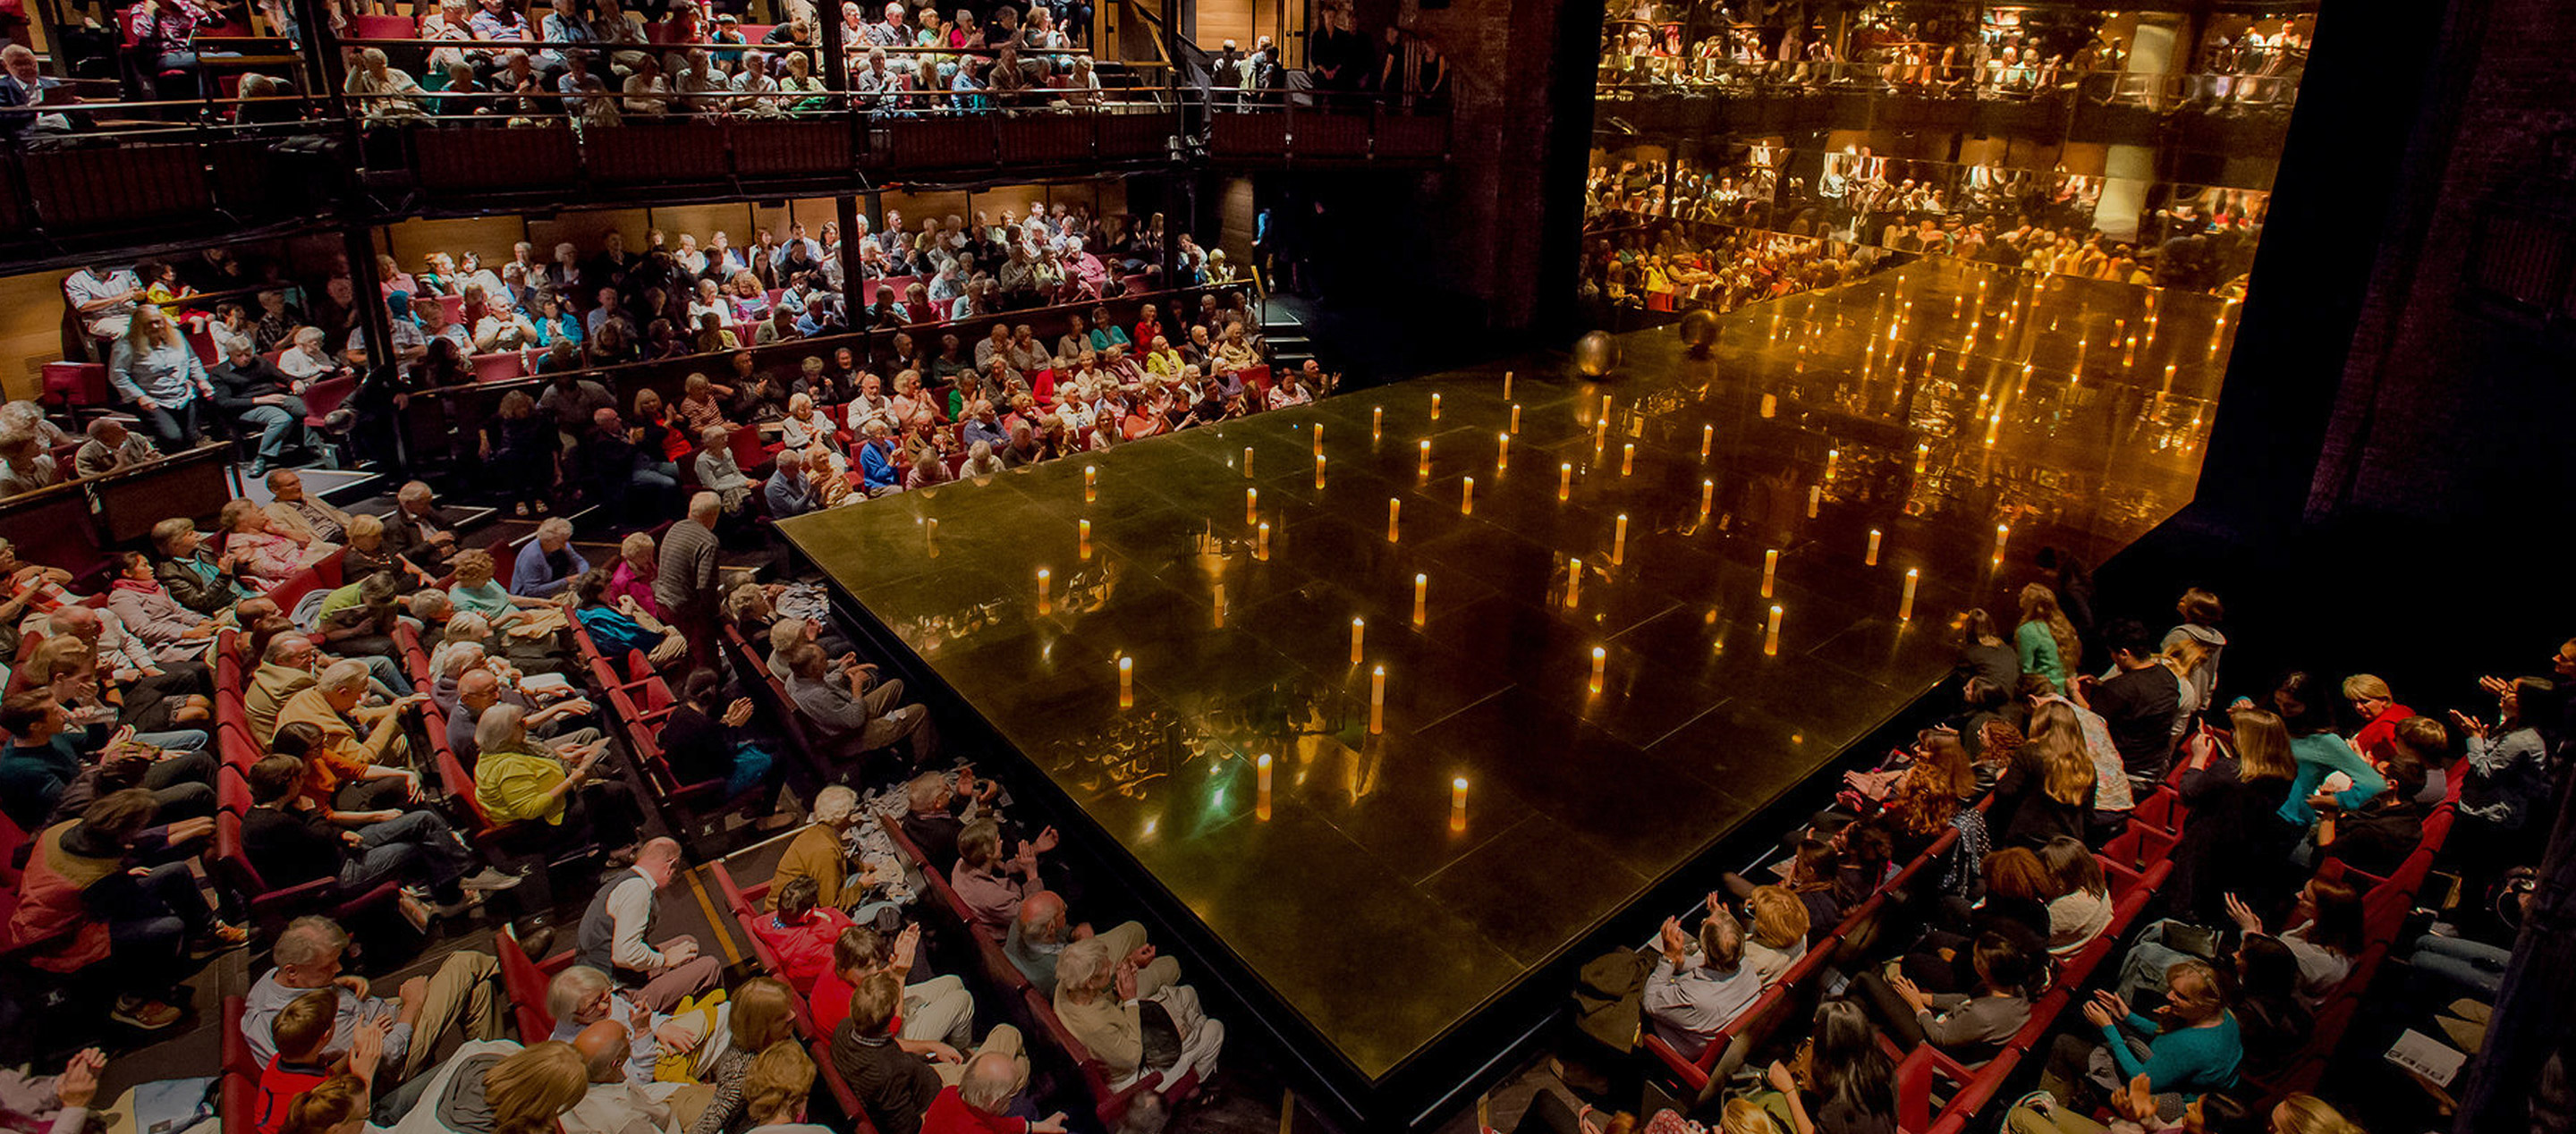 Audience at the Royal Shakespeare Theatre Stratford-upon-Avon